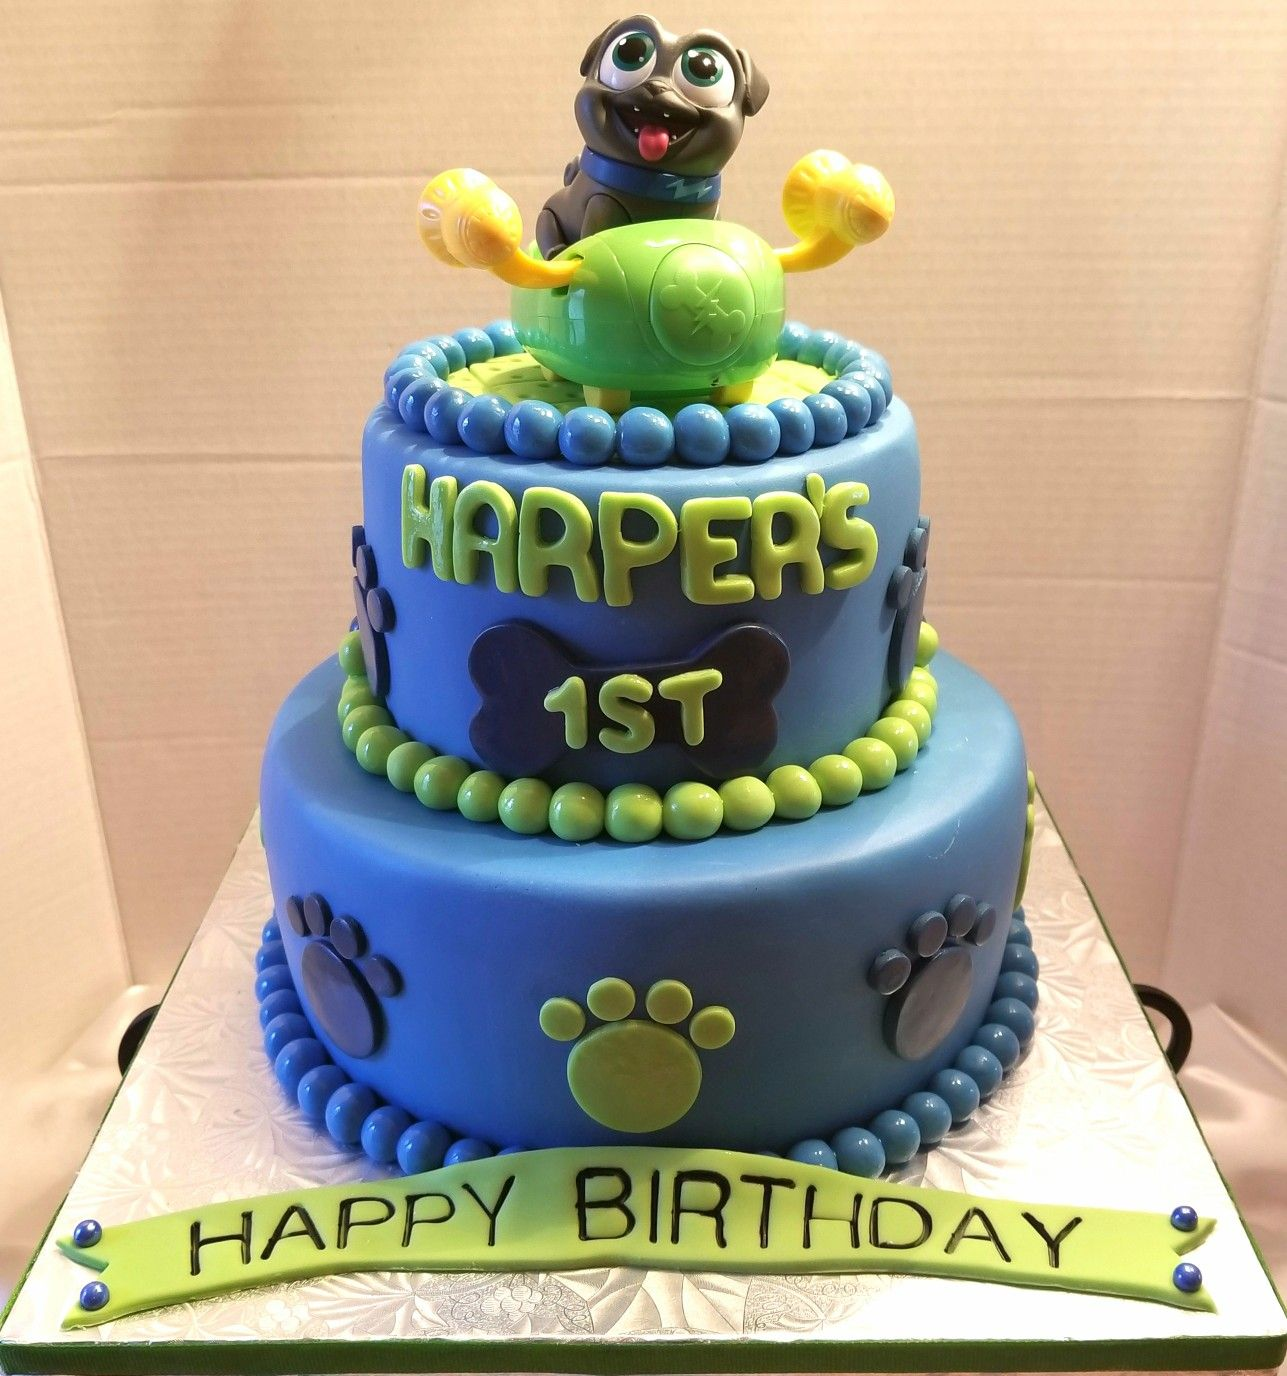 Puppy Dog Pals Themed 1st Birthday Cake Birthday Party Cake